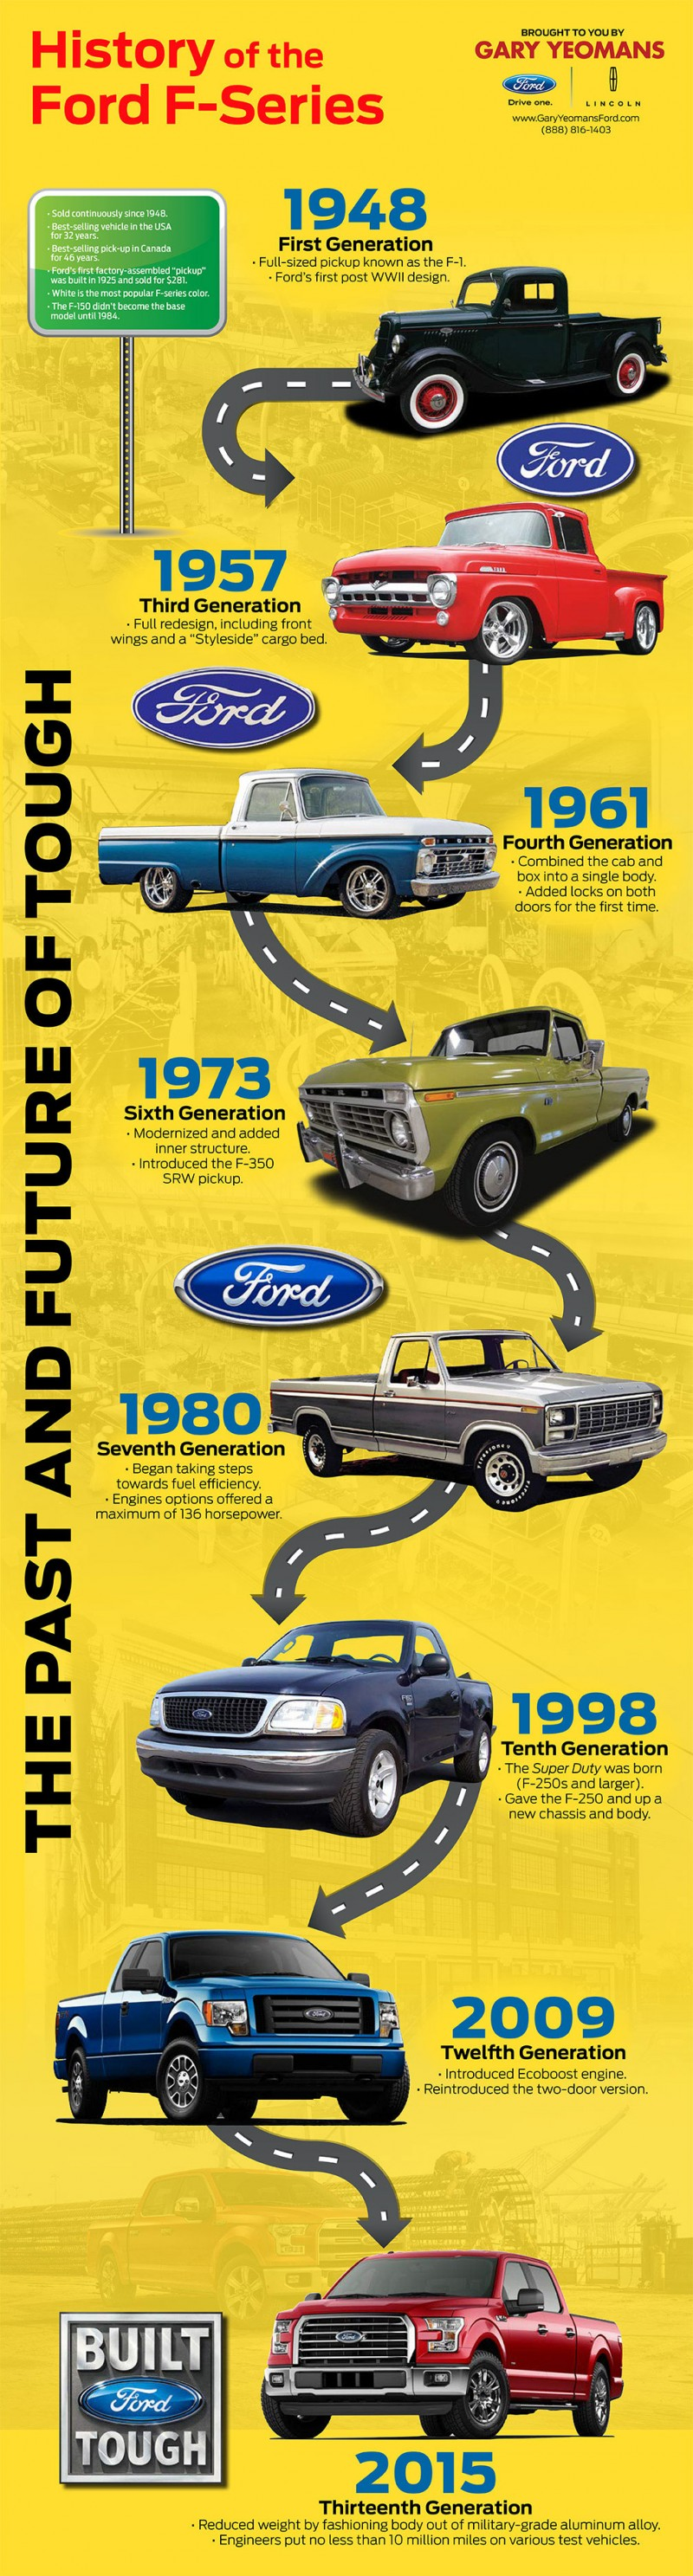 History of the Ford F-Series [Infographic]